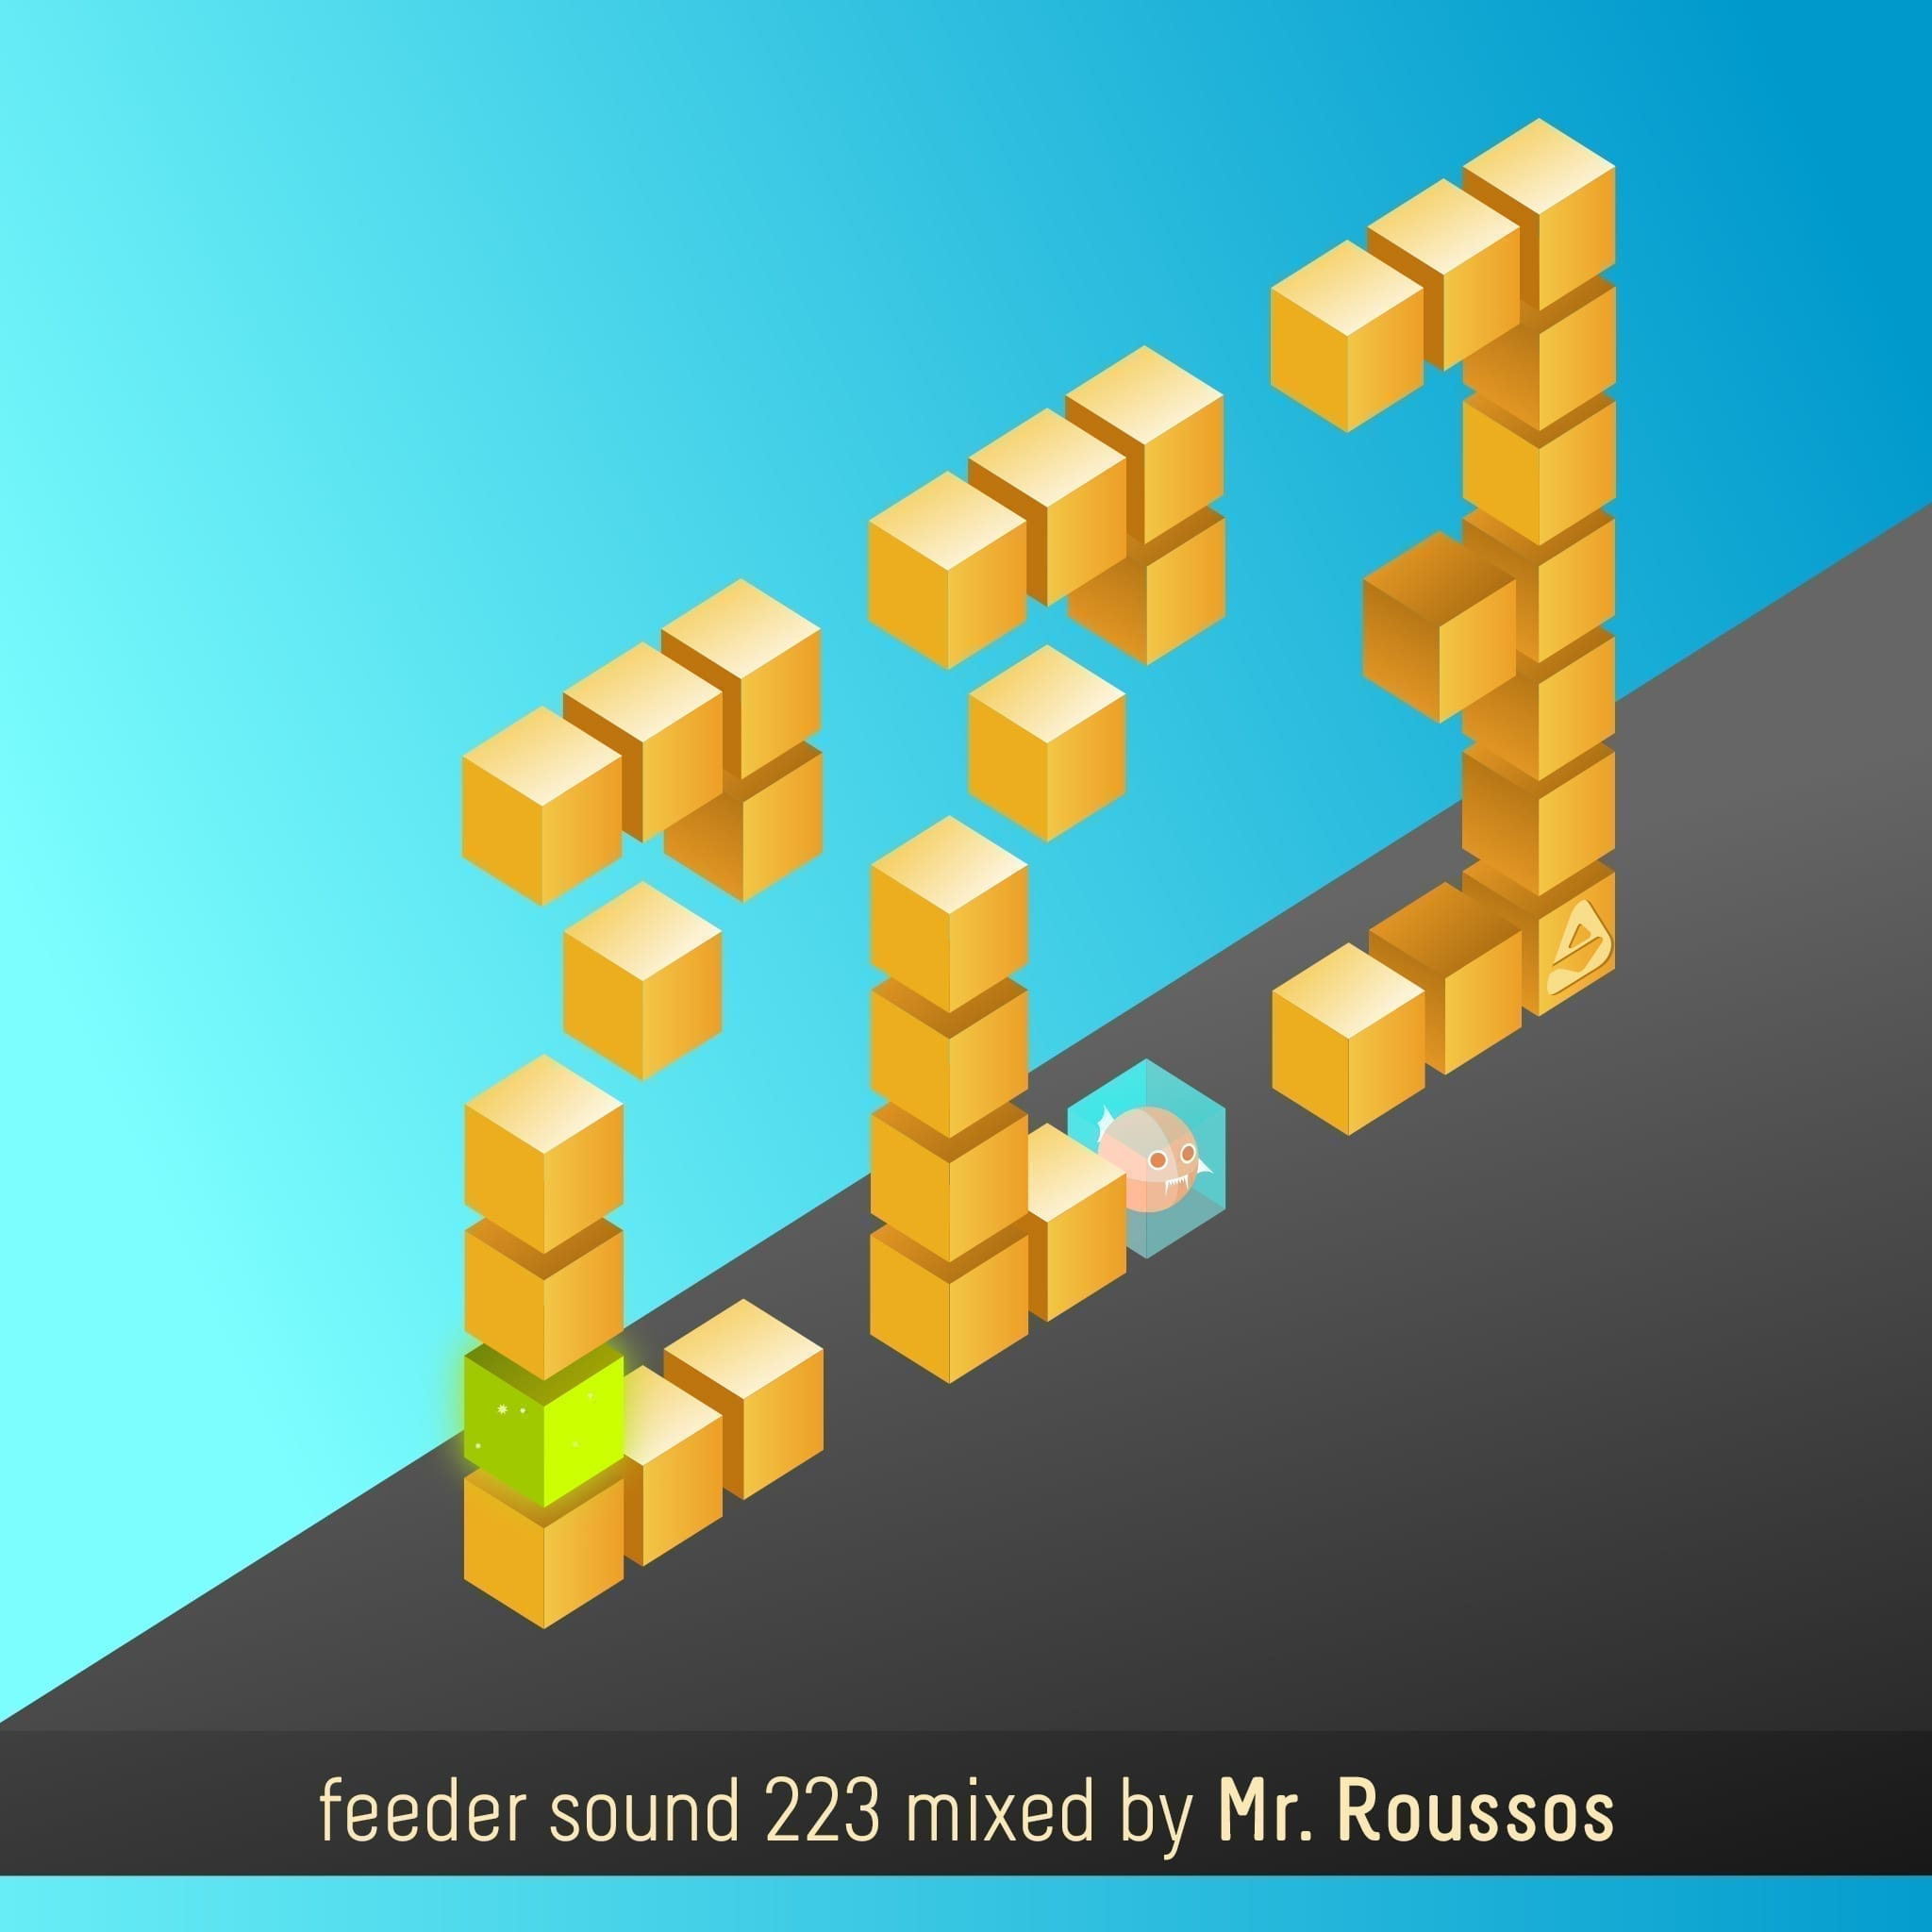 feeder sound 223 mixed by Mr. Roussos article-cover